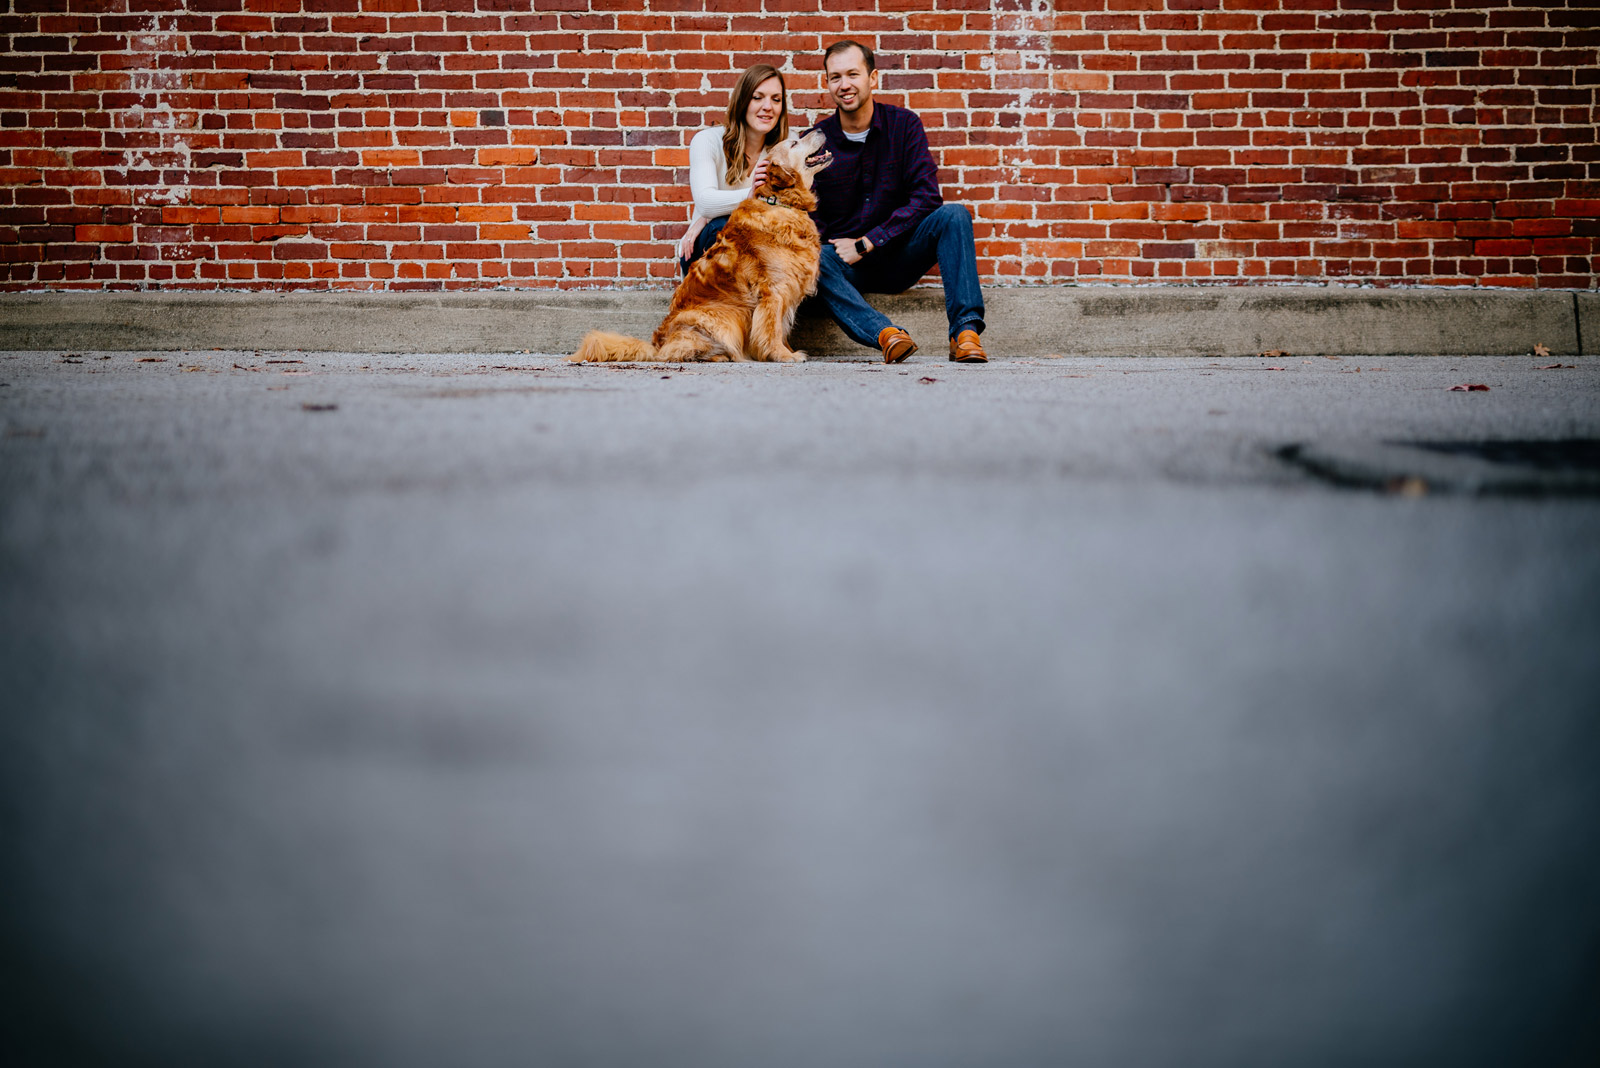 couple petting dog downtown charlest n west virginia